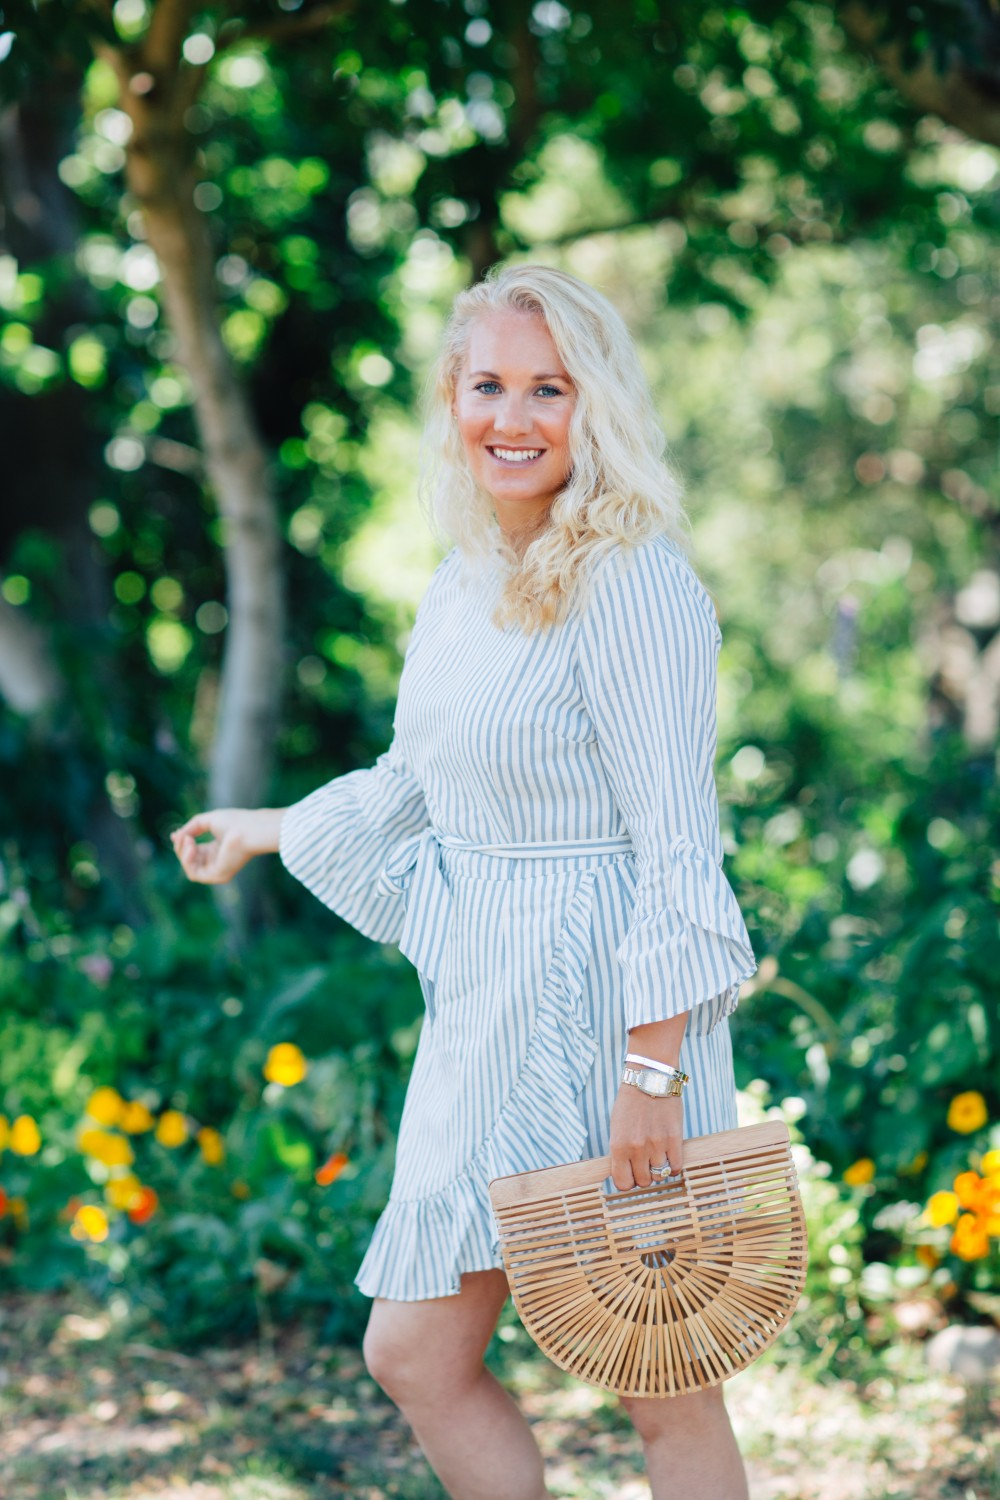 4th of July Picnic Outfit-Outfit Inspiration-Who What Wear for Target-Summer Style-Have Need Want-4th of July-July Fourth Outfit 6